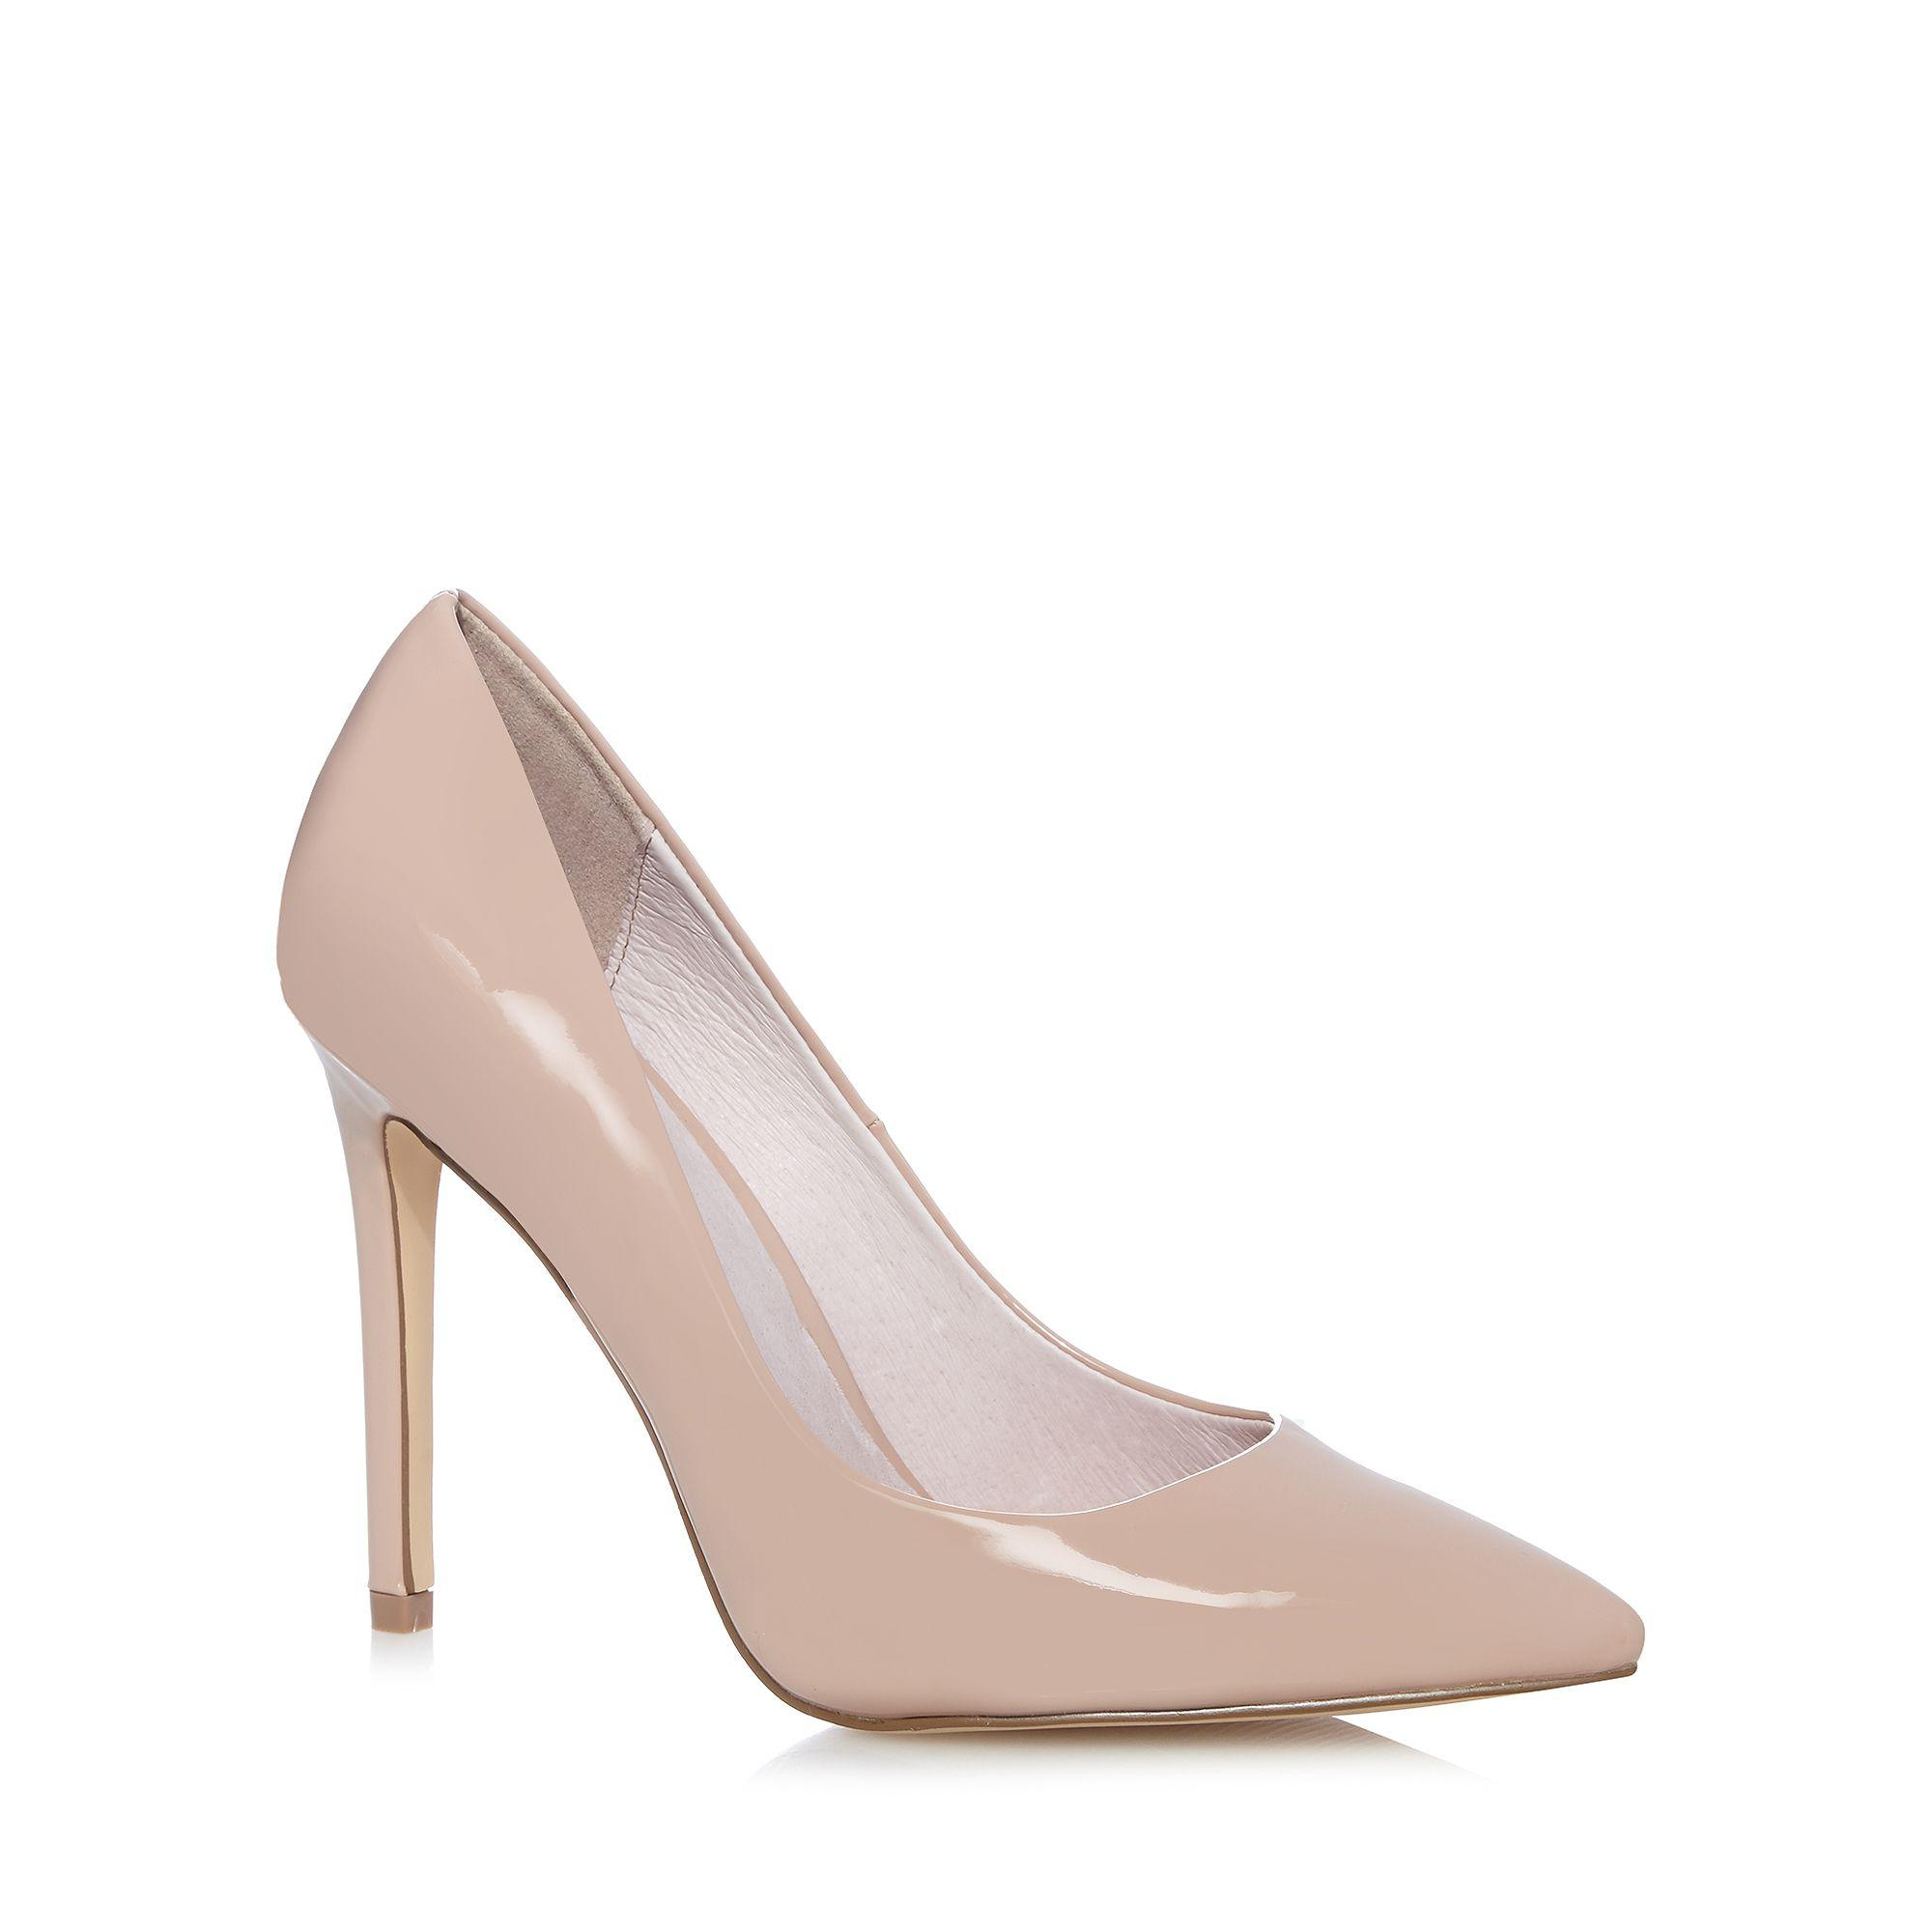 0182437454f faith-Natural-Nude-chloe-Patent-High-Stiletto-Pointed-Shoes.jpeg